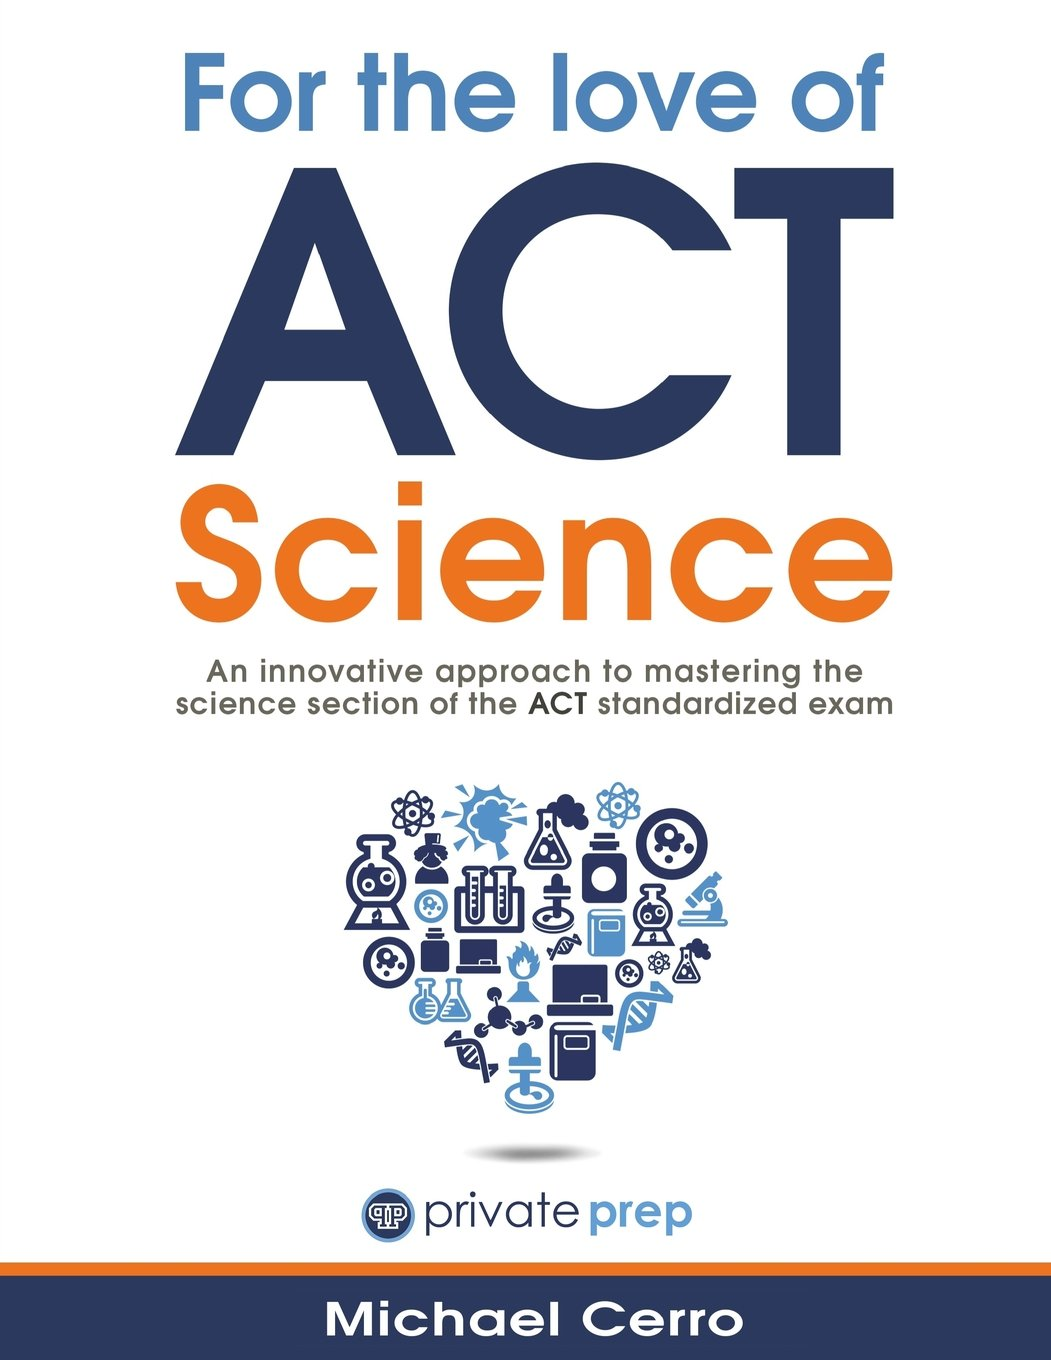 Love ACT Science innovative standardized